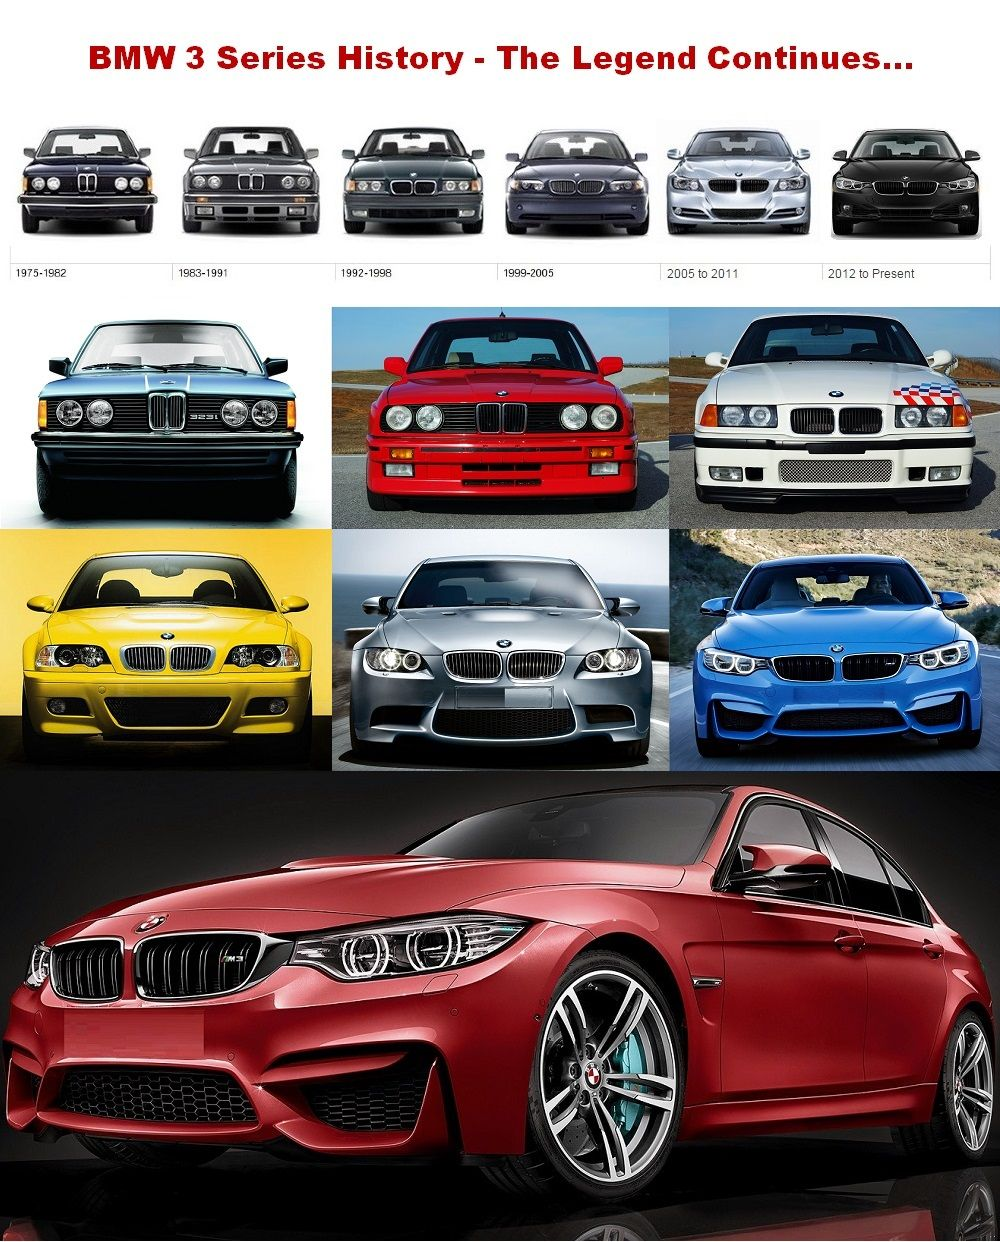 BMW 3 Series historical evolution  BMW beemer  Pinterest  BMW